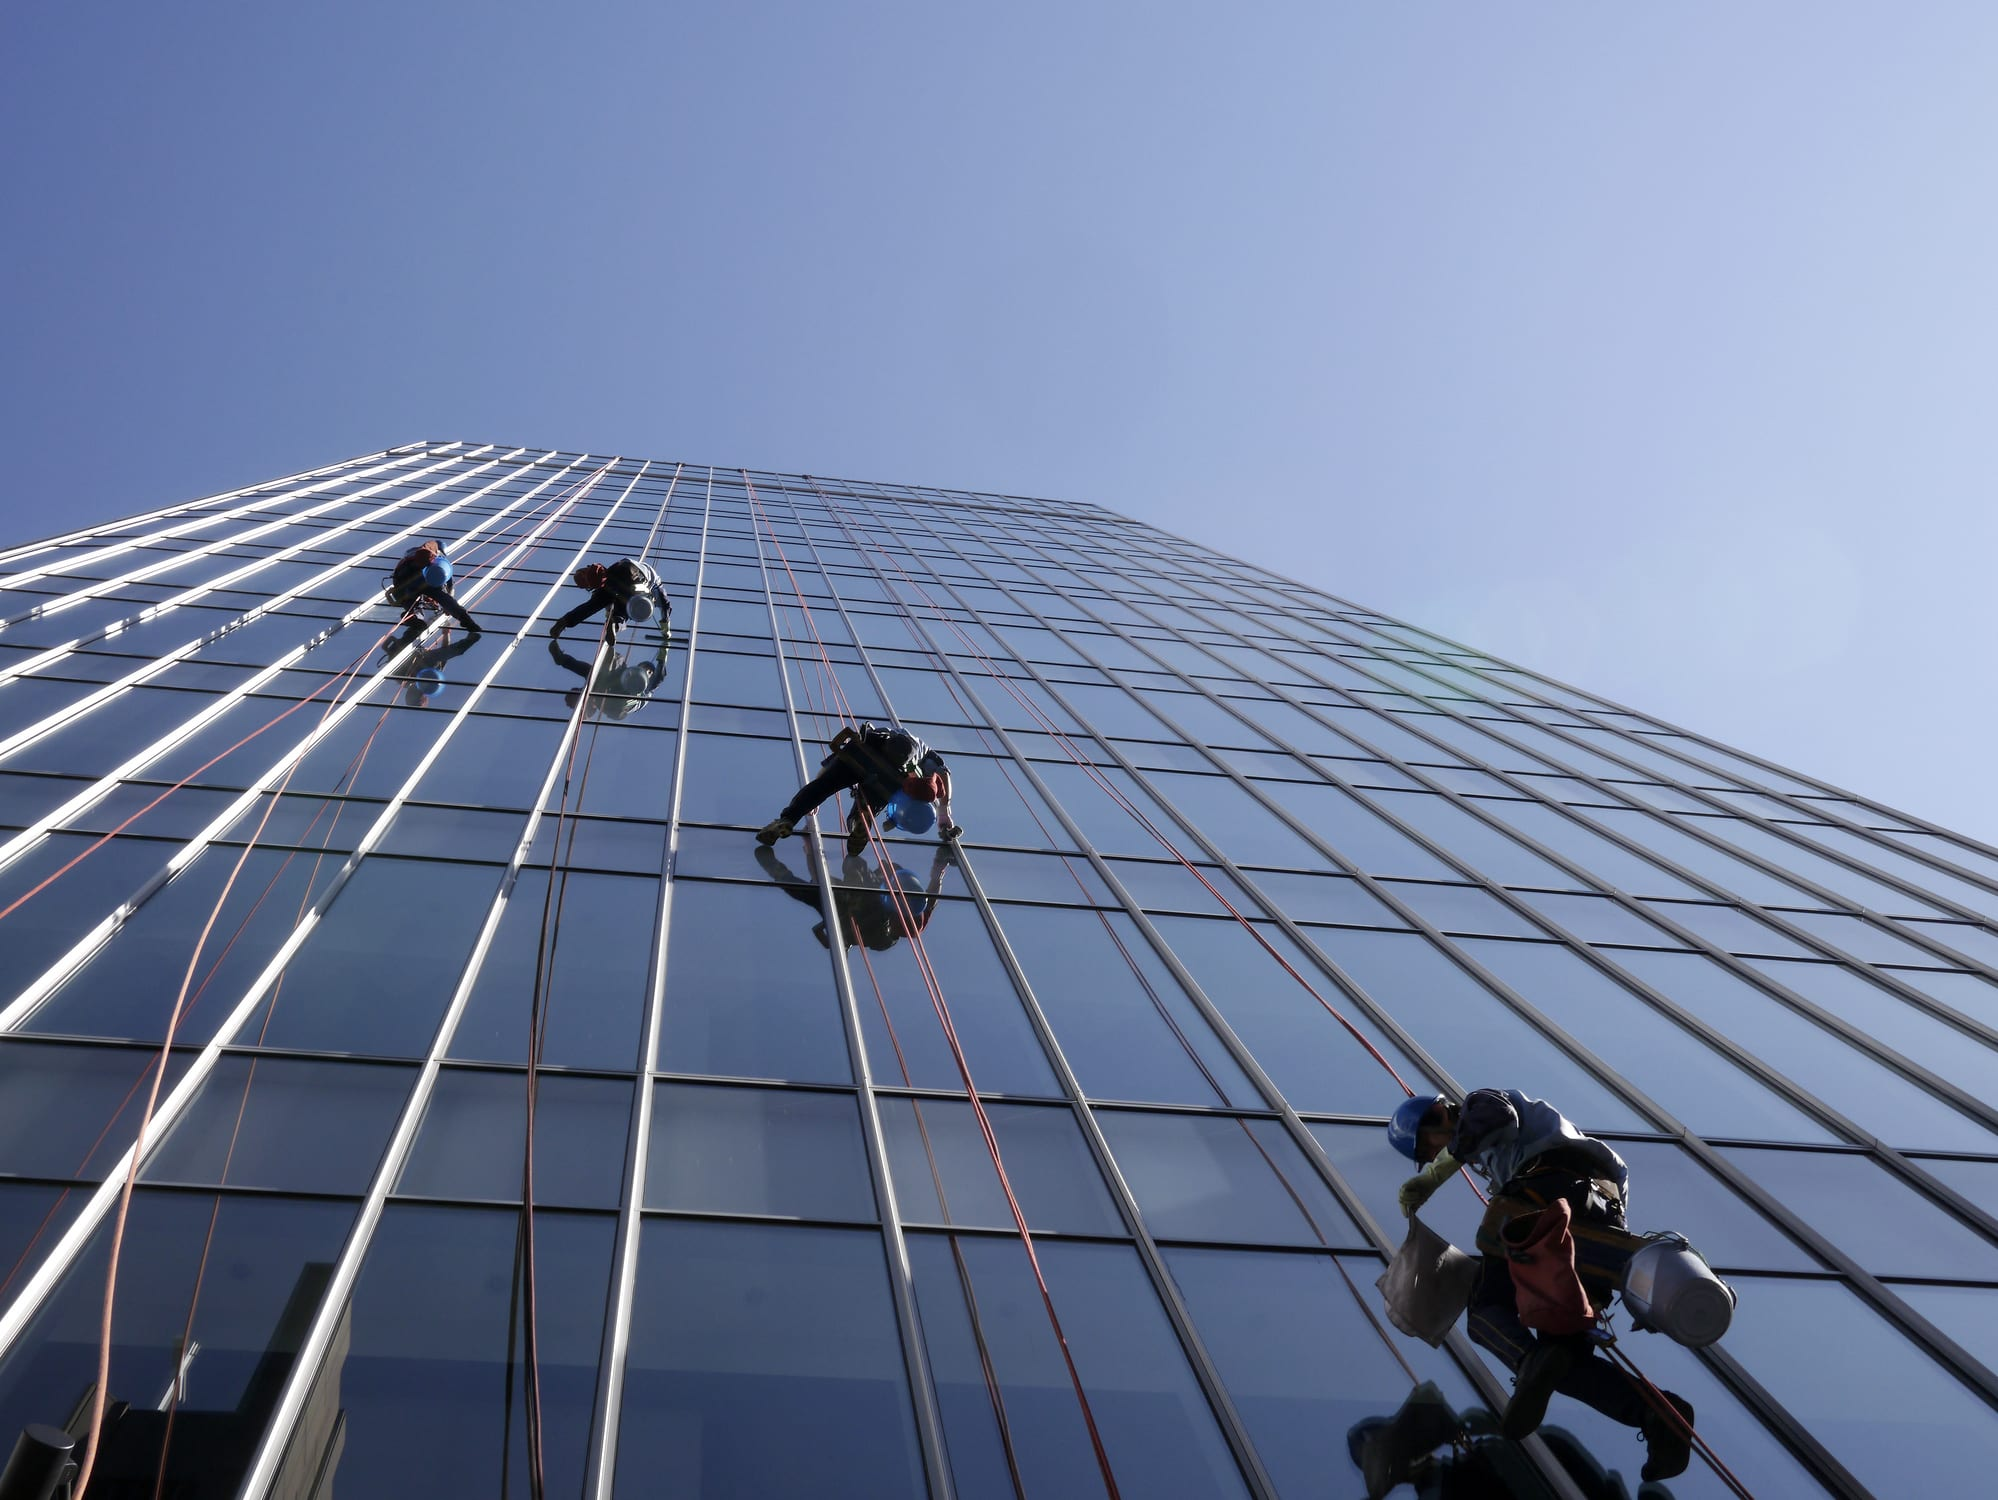 Window washers liability insurance